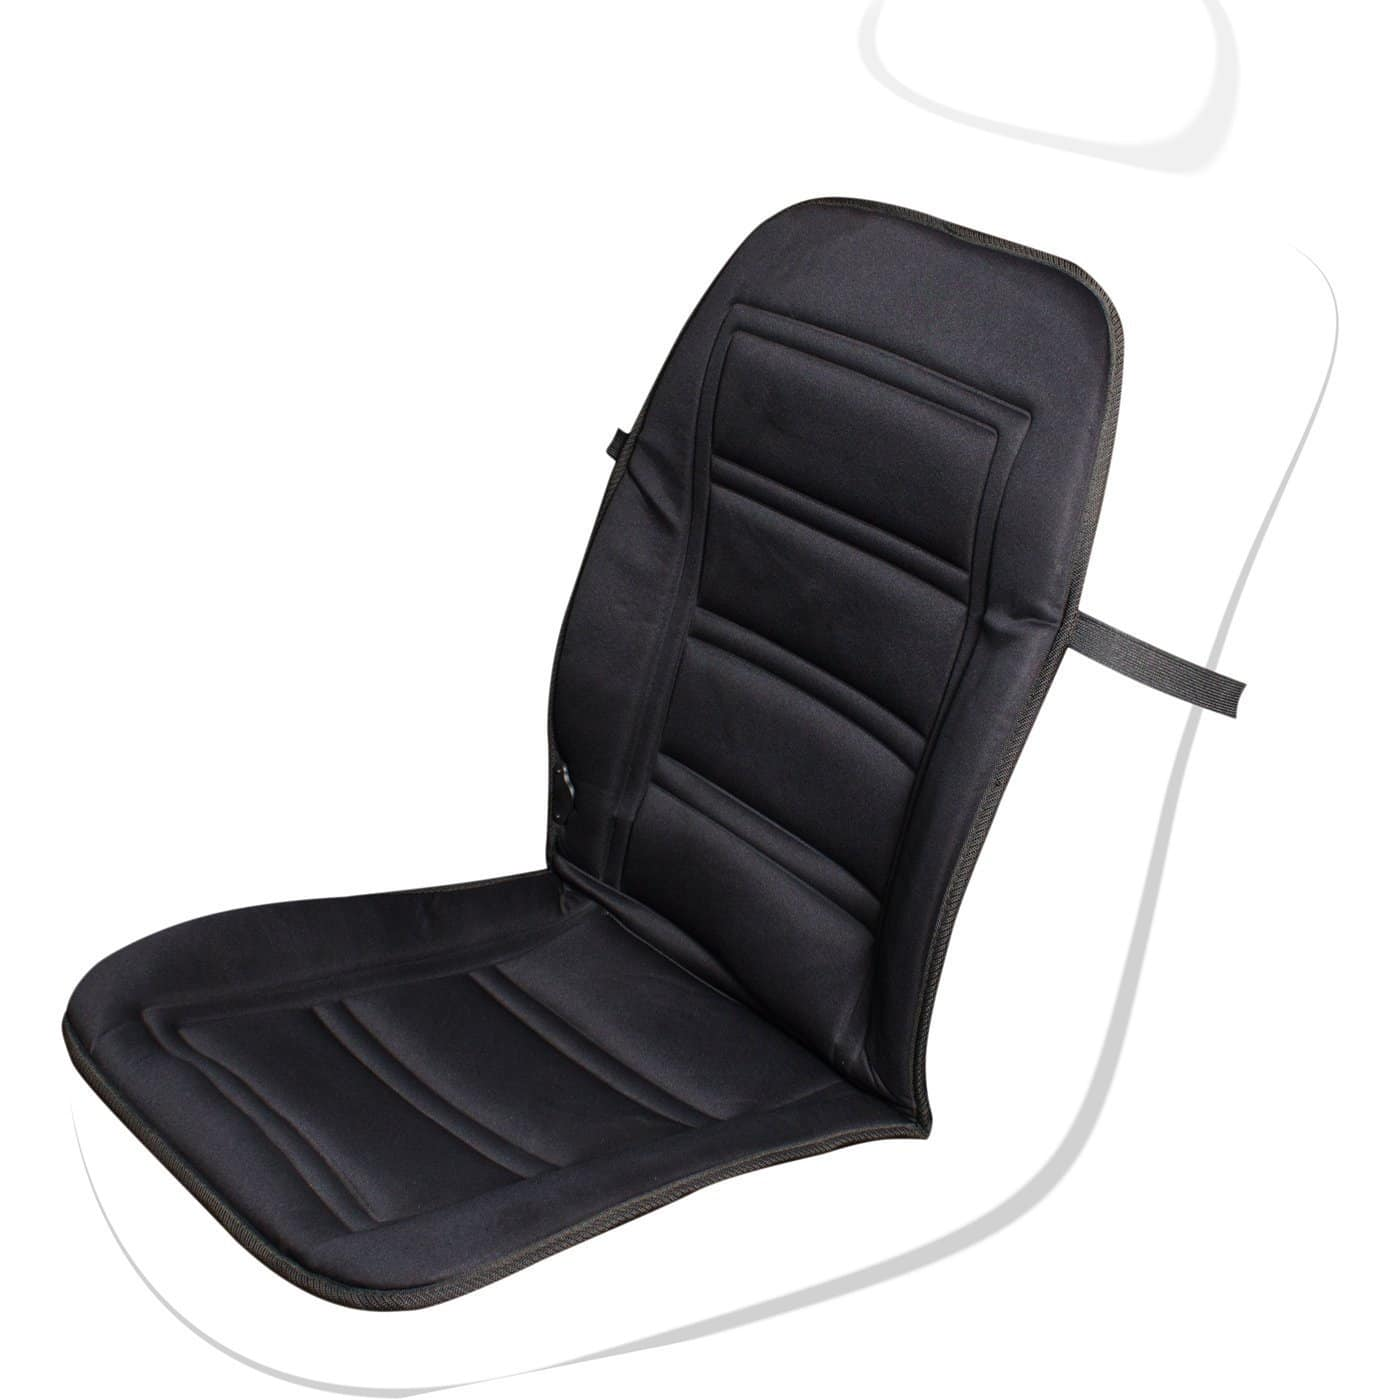 Heated Seat Covers - OxGord Auto Warmer